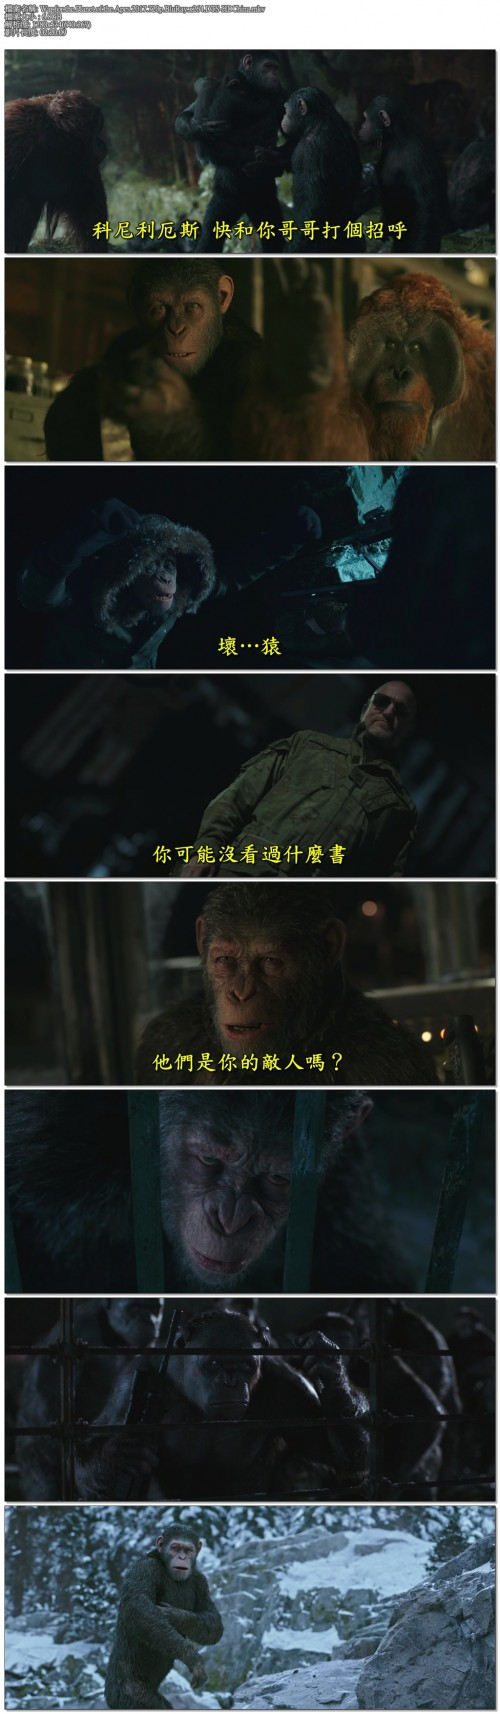 War.for.the.Planet.of.the.Apes.2017.720p.BluRay.x264.DTS-HDChina.mkv.jpg